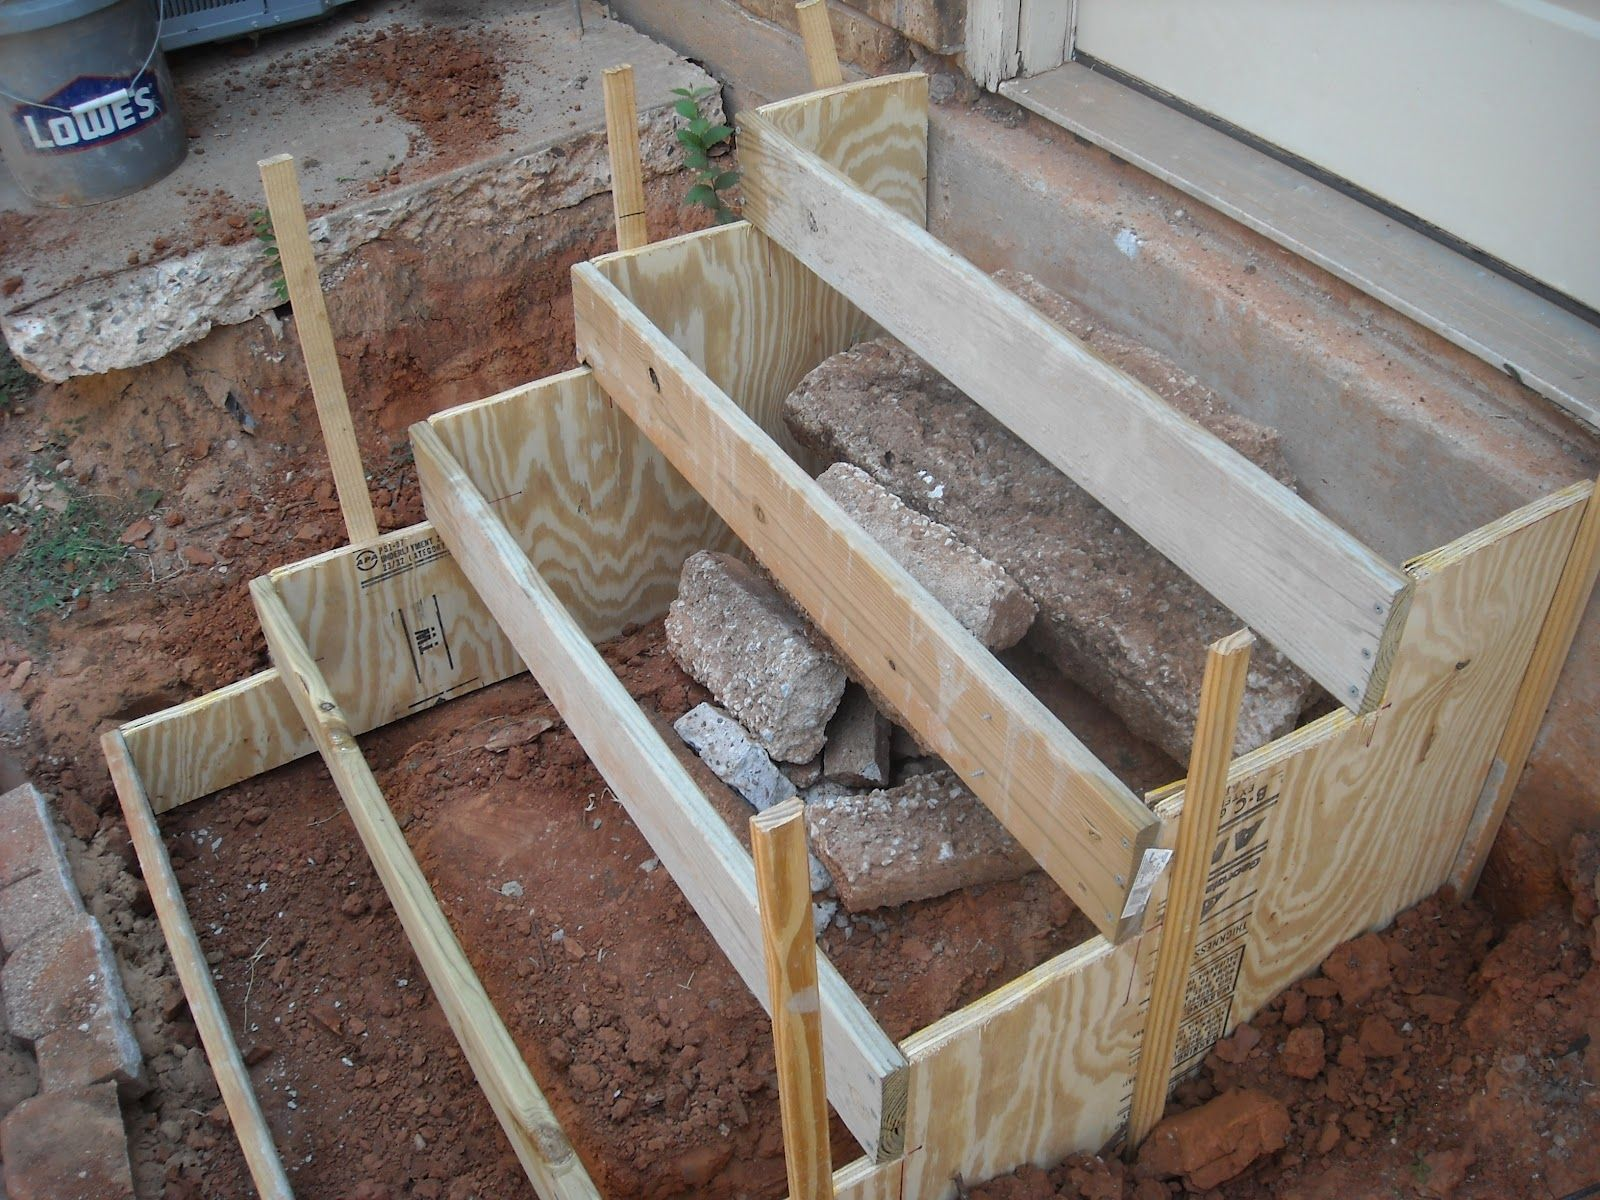 How To Make Concrete Steps Bug S Life How To Make Concrete Stairs Diy Stairs Concrete Steps Concrete Stairs